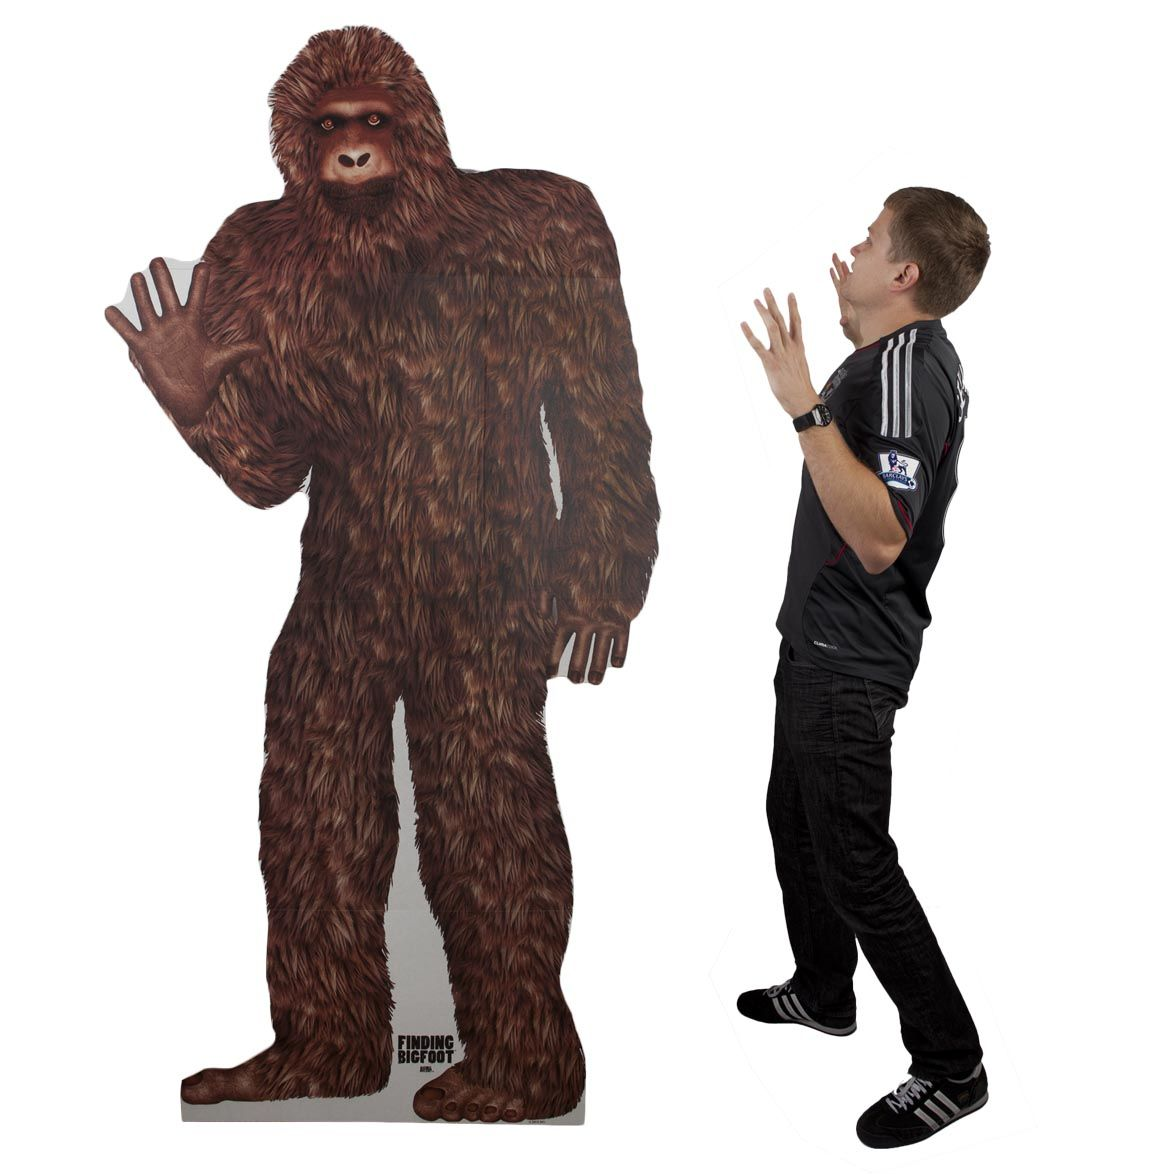 Finding Bigfoot Standee   Discovery Channel   Products I Love ...